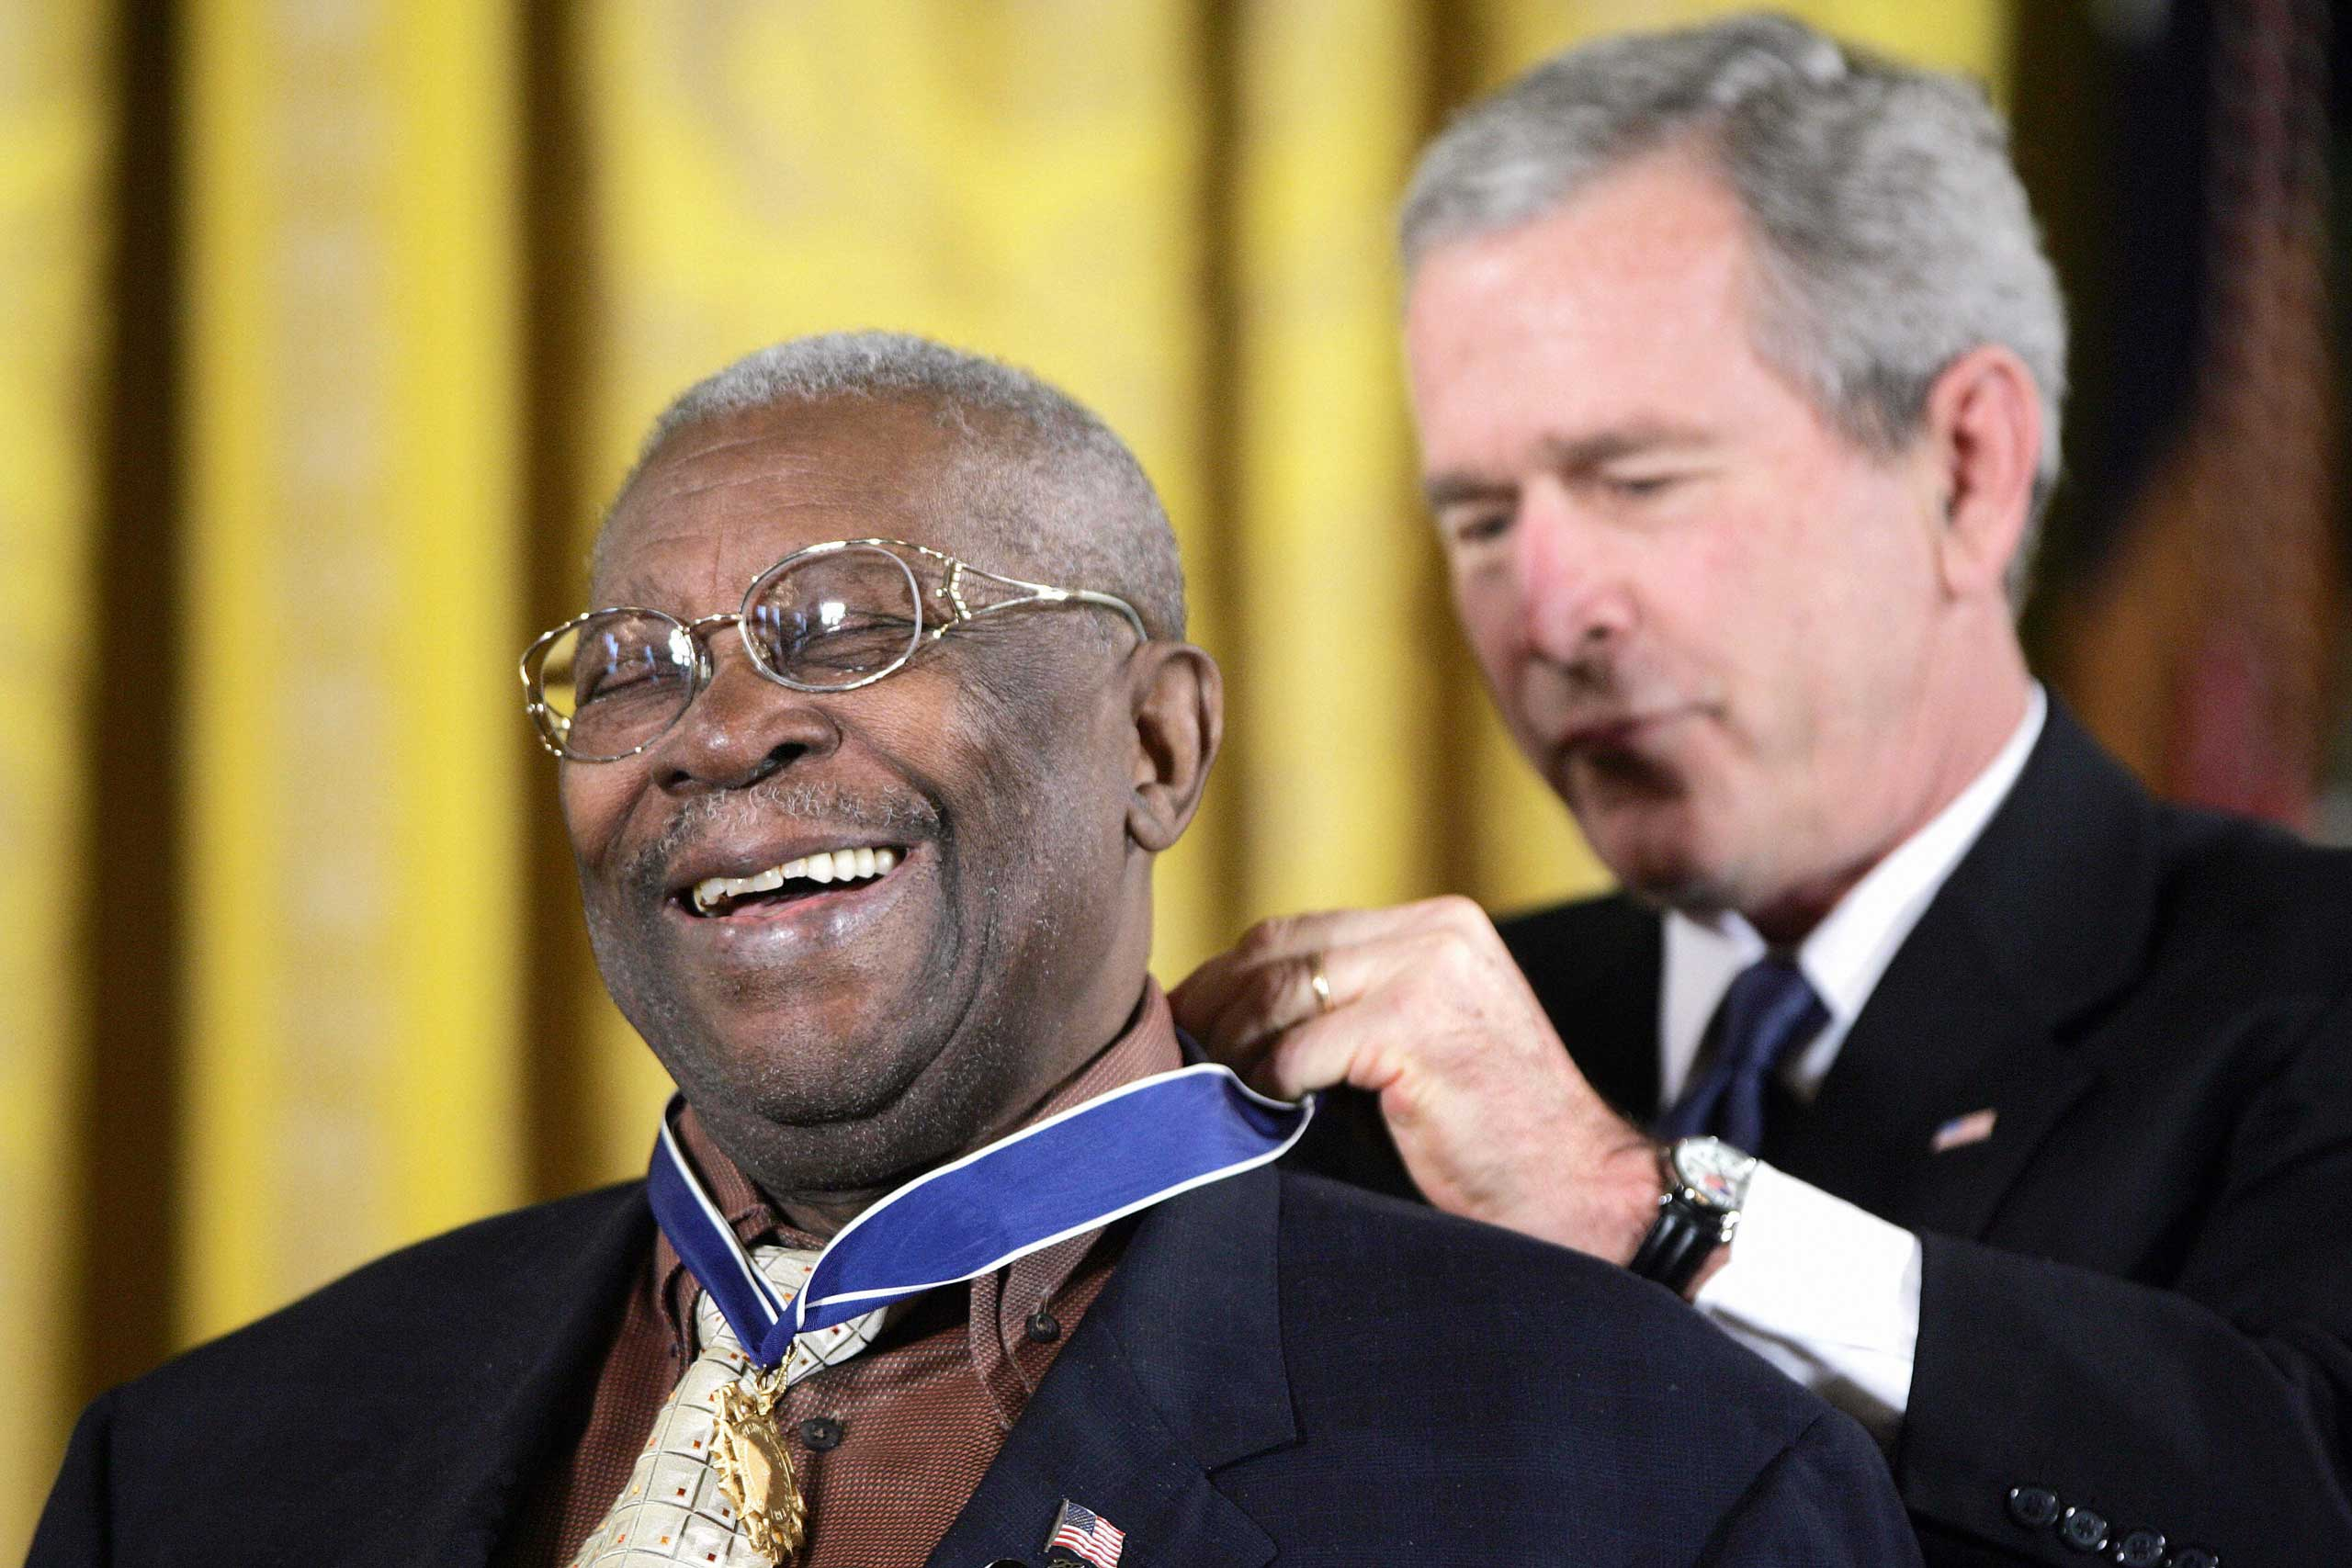 B.B. King smiles while President George W. Bush presents King with the Medal of Freedom on Dec. 15, 2006 in the East Room of the White House in Washington, DC.